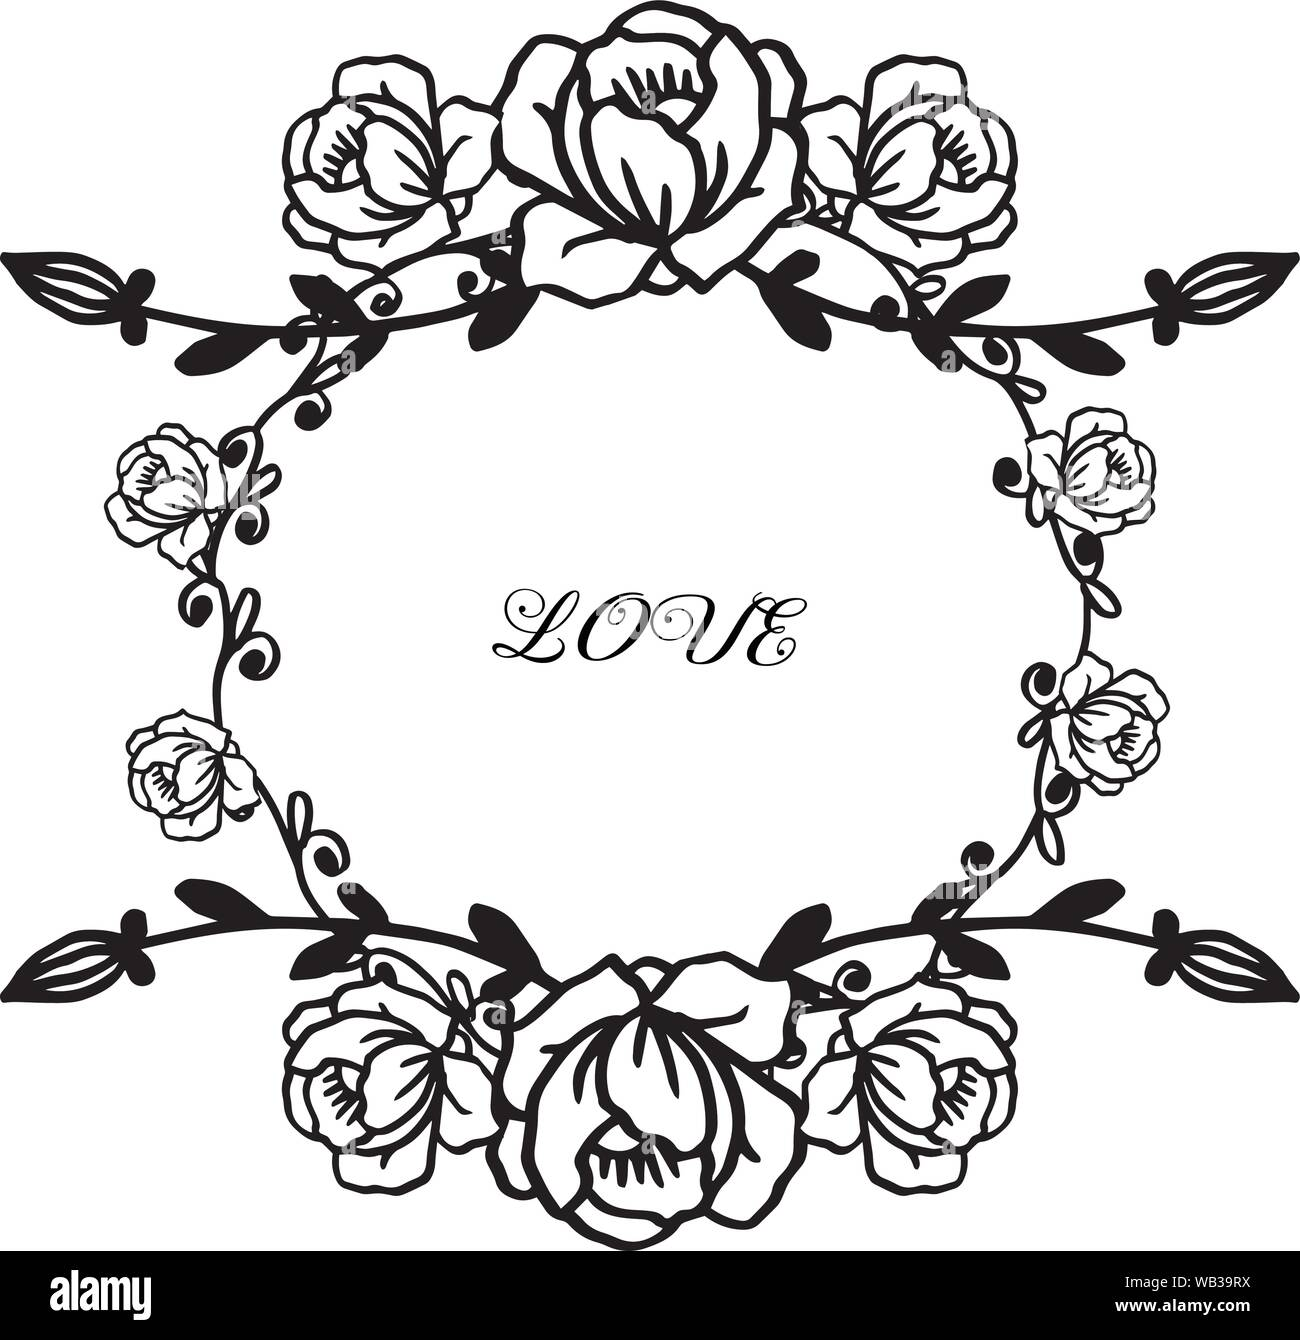 Drawing and sketch with black and white line art floral